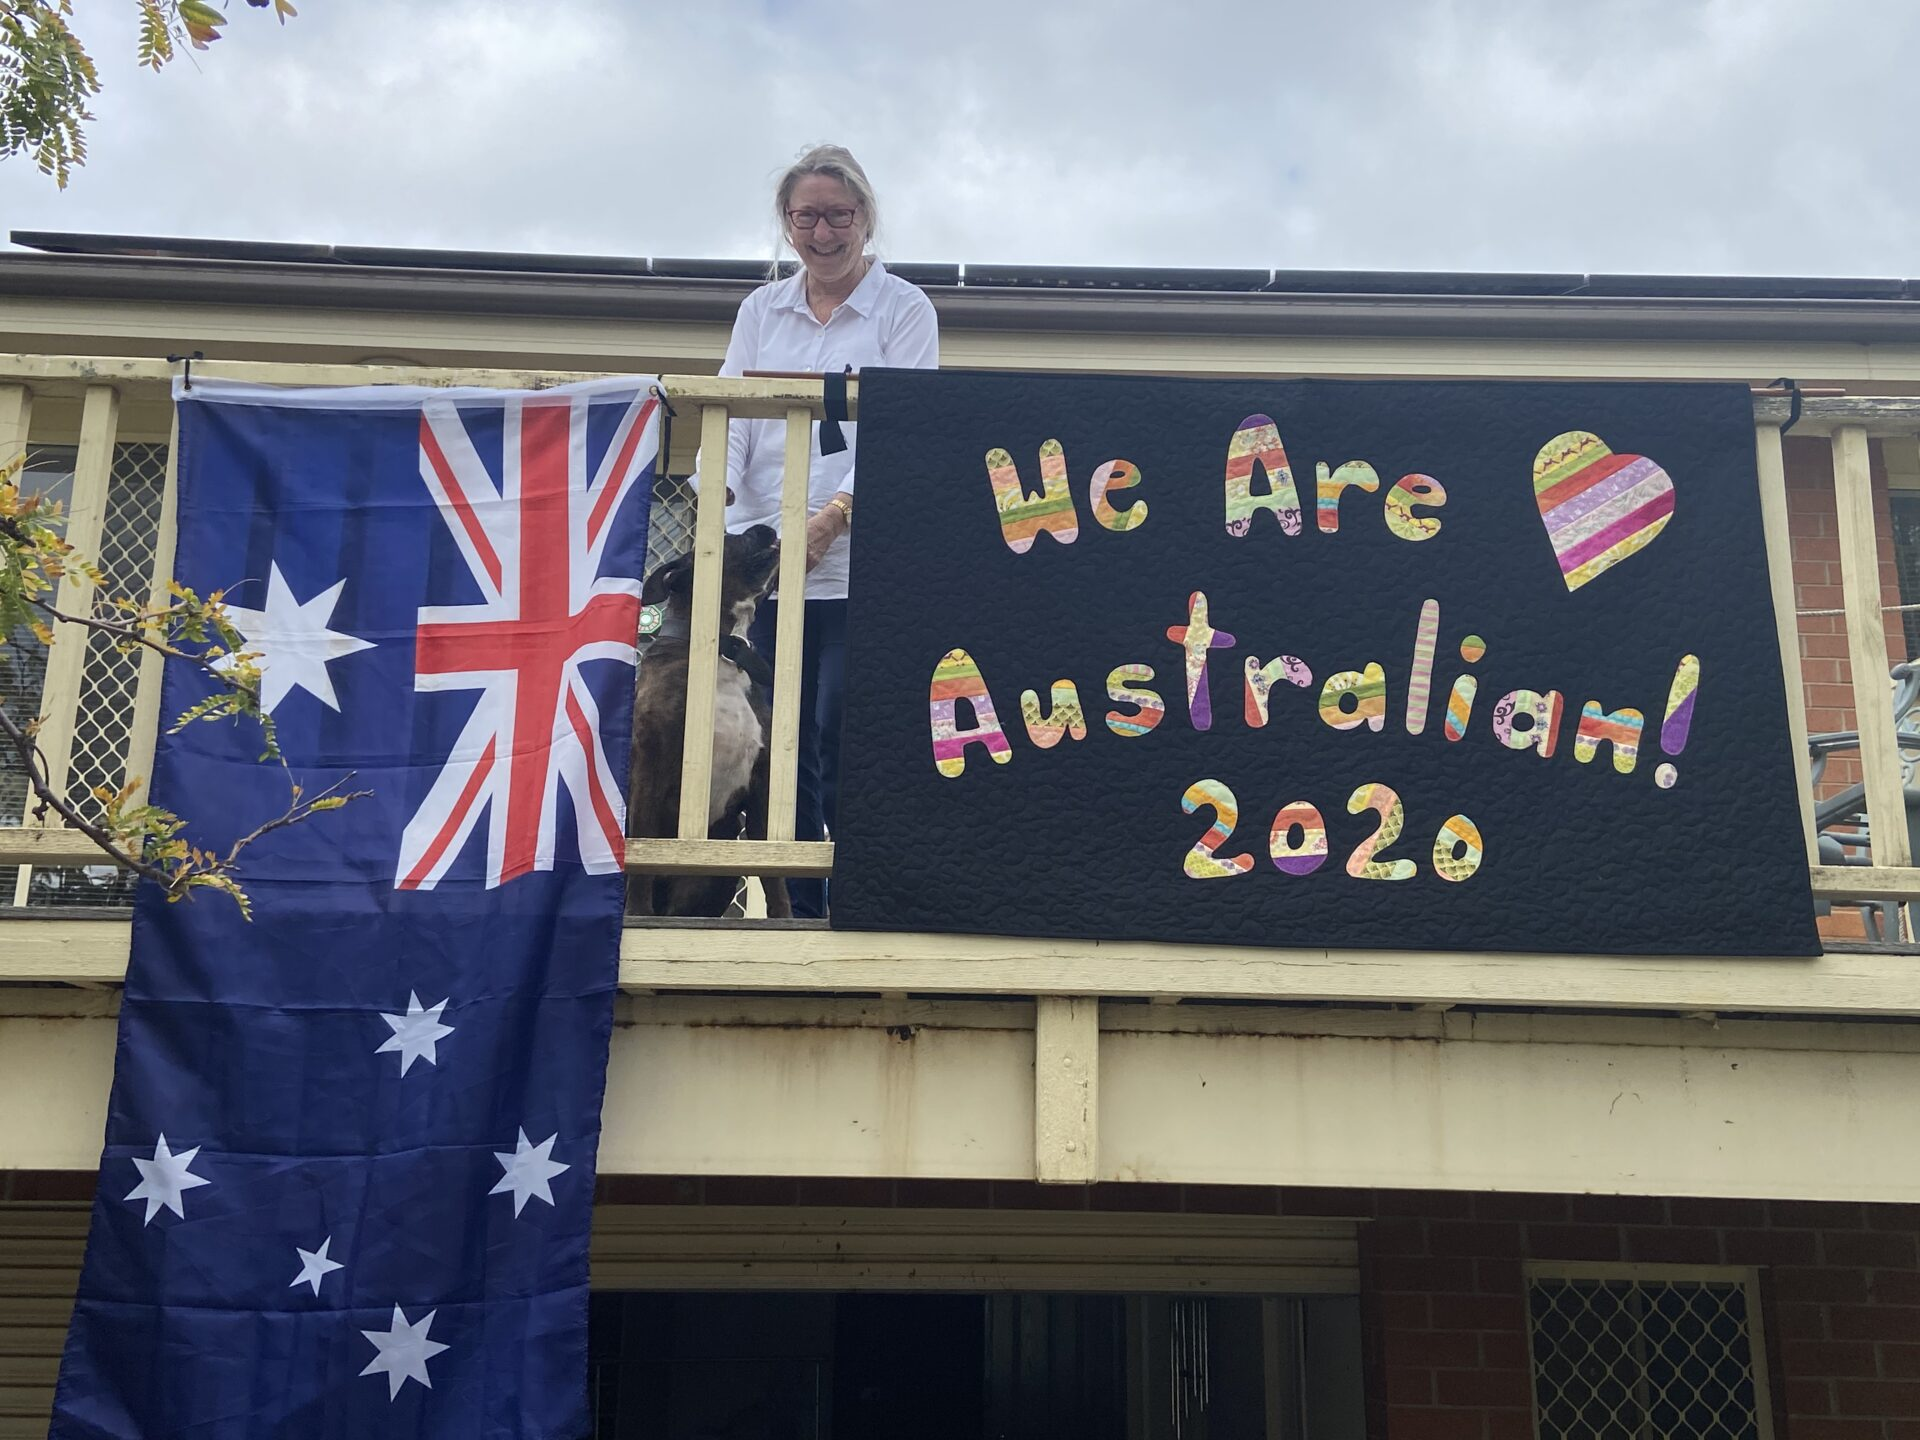 a handmade quilt with the words 'we are Australian 2020' suspended on a veranda next to an australian flag. In between the flag and the quilt is a woman wearing a white shirt and glasses.